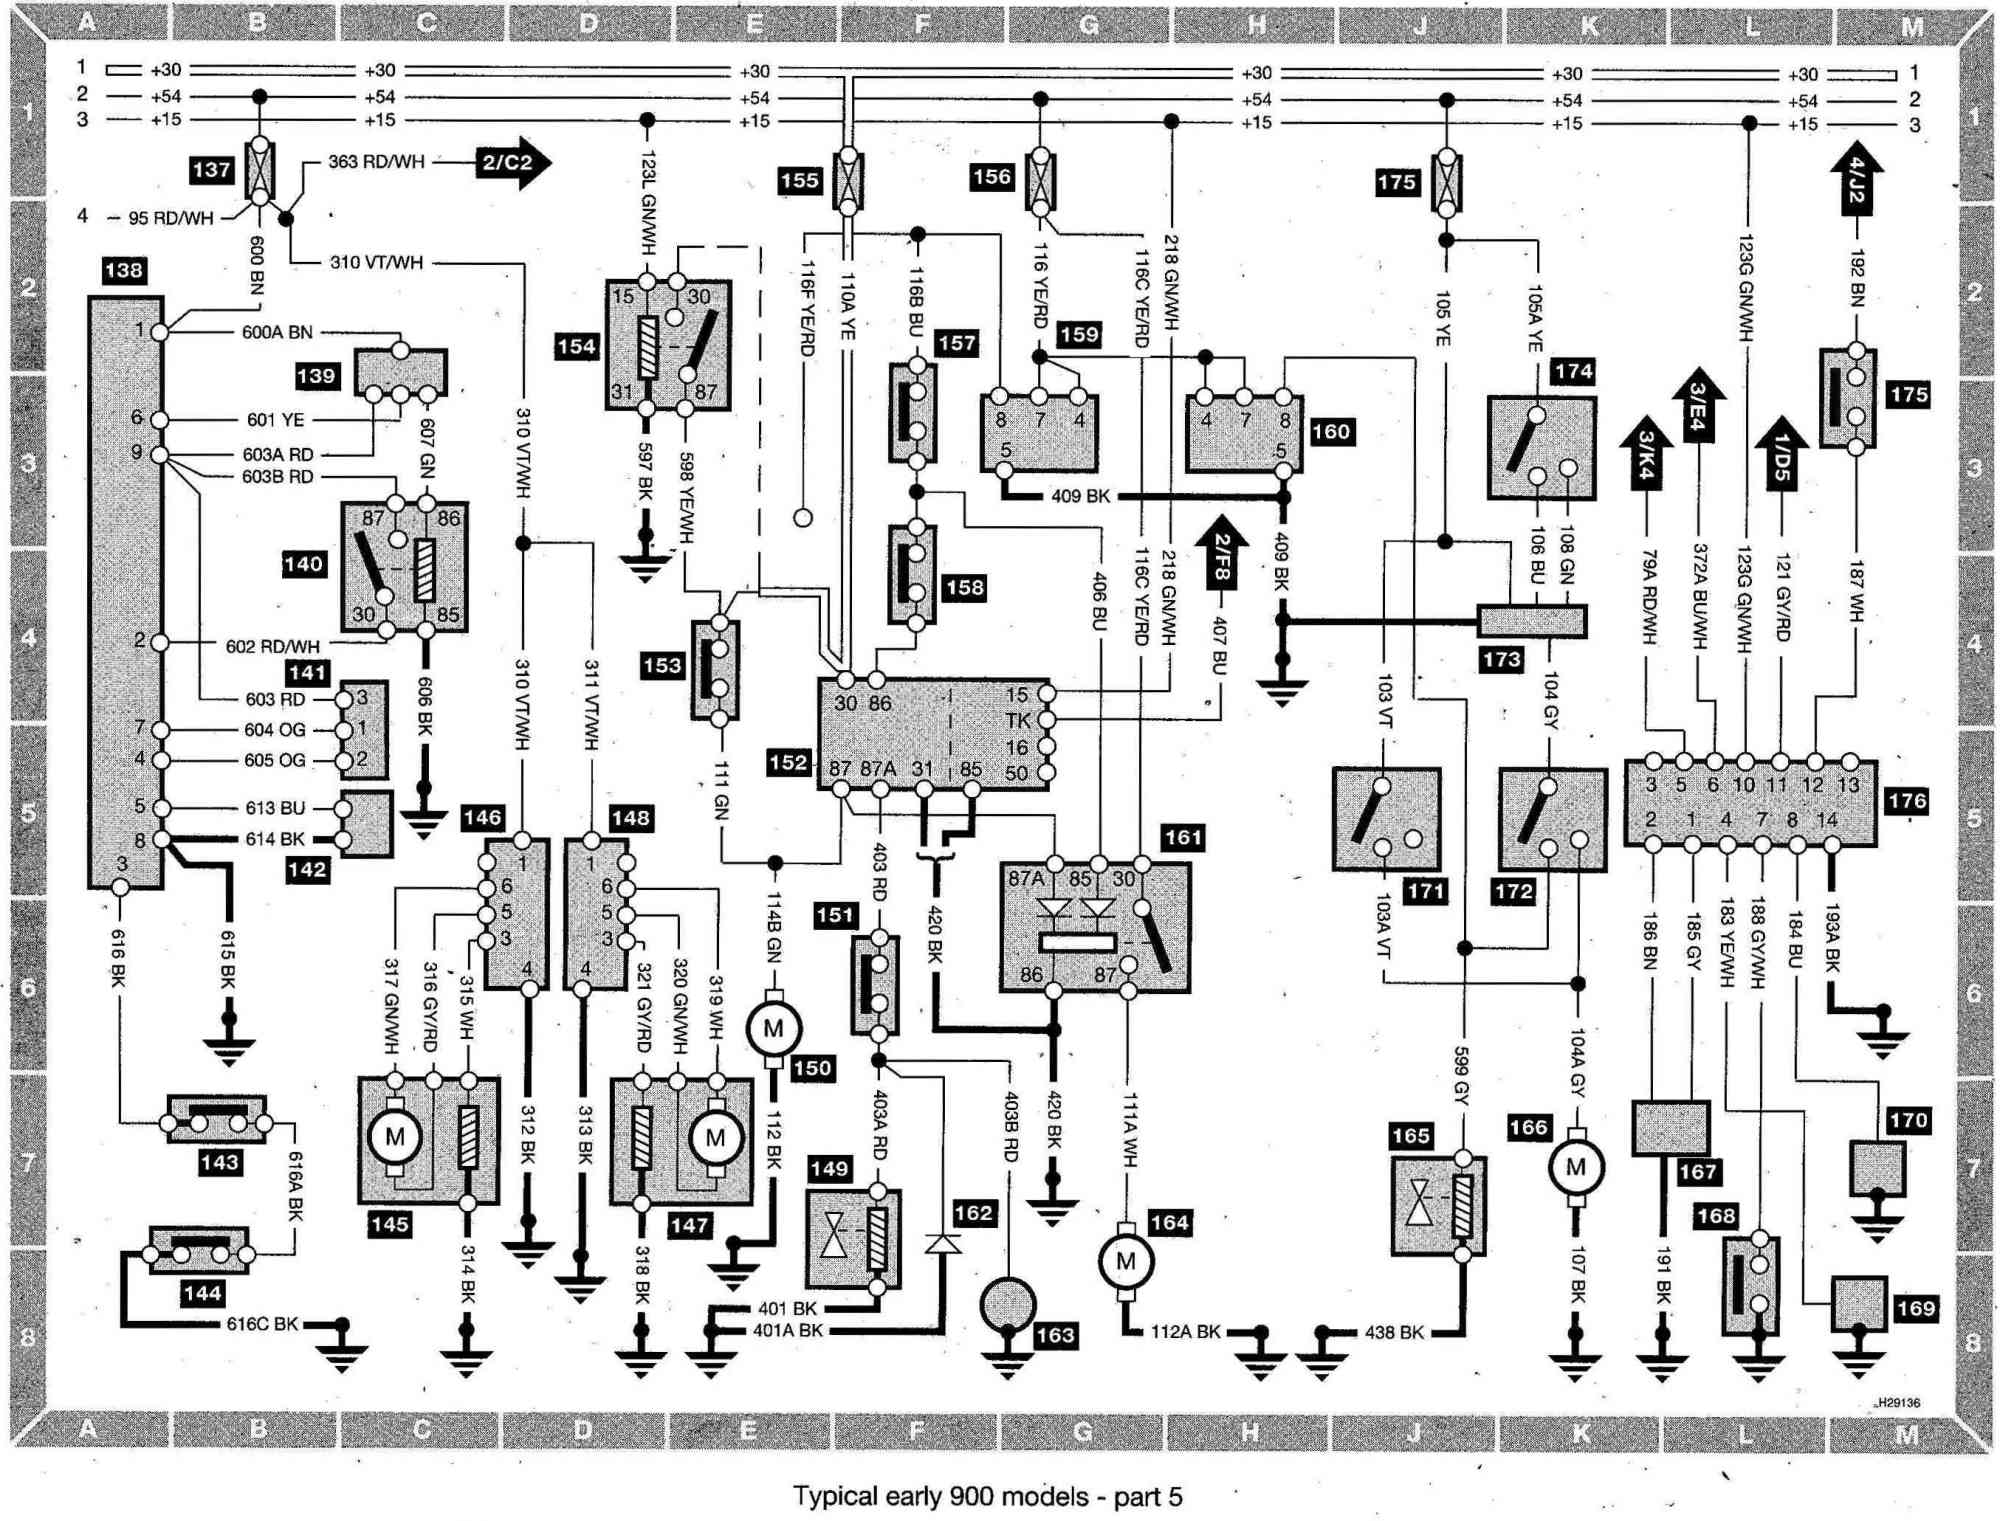 hight resolution of saab 900 wiring harness wiring diagram schemasaab 900 wiring harness owner manual u0026 wiring diagram